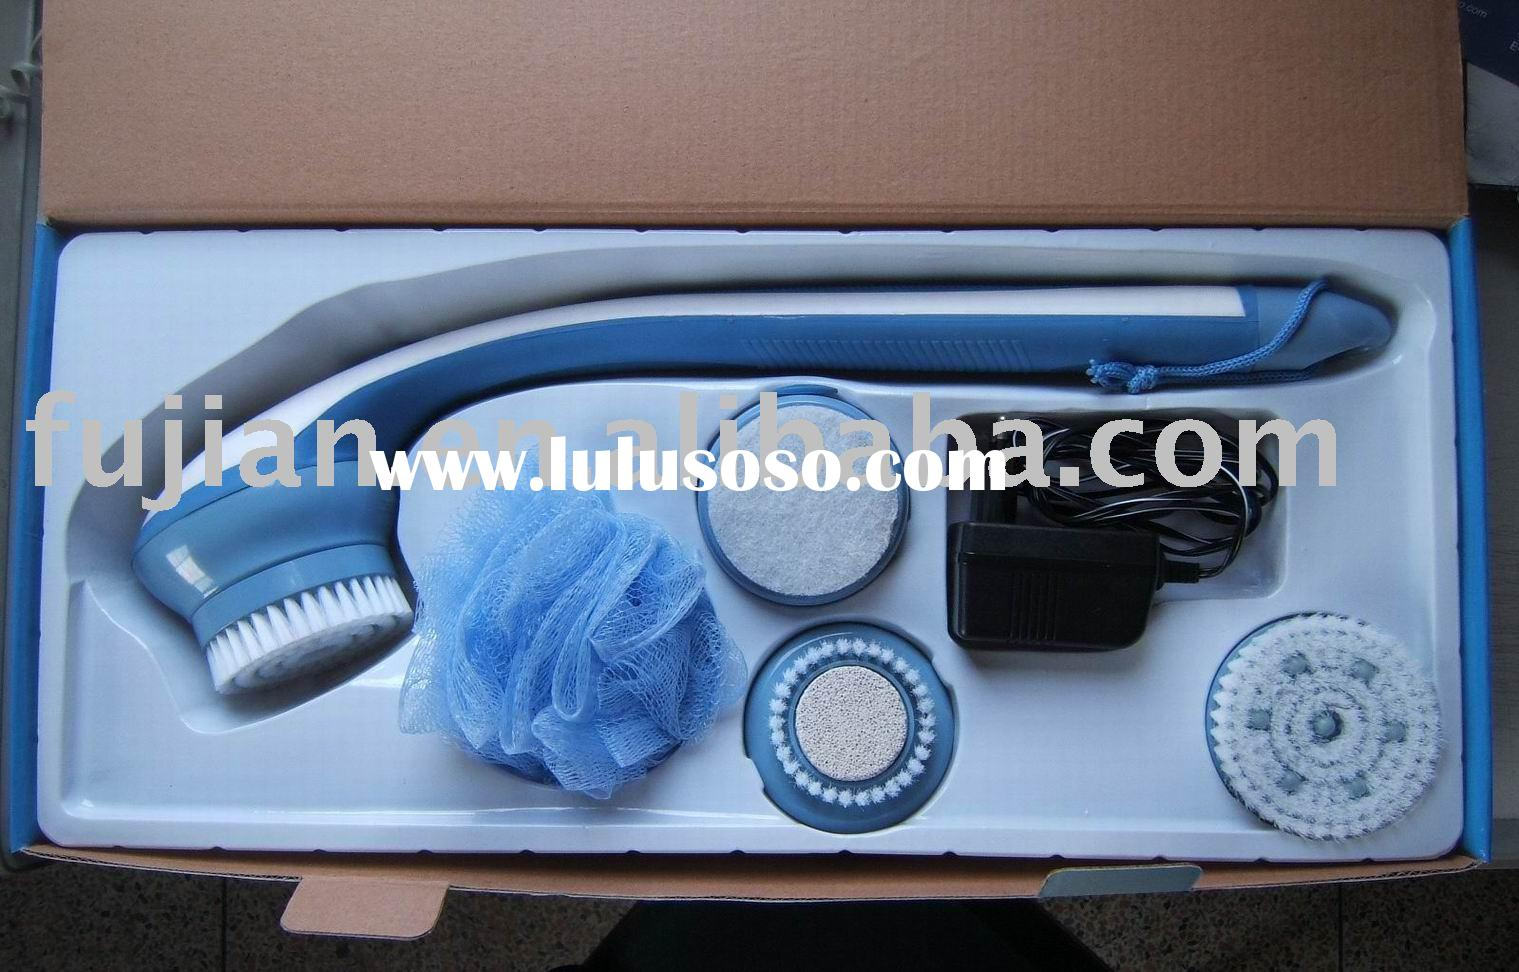 Electric Bathroom Cleaning Brush My Web Value - Electric bathroom cleaning brush